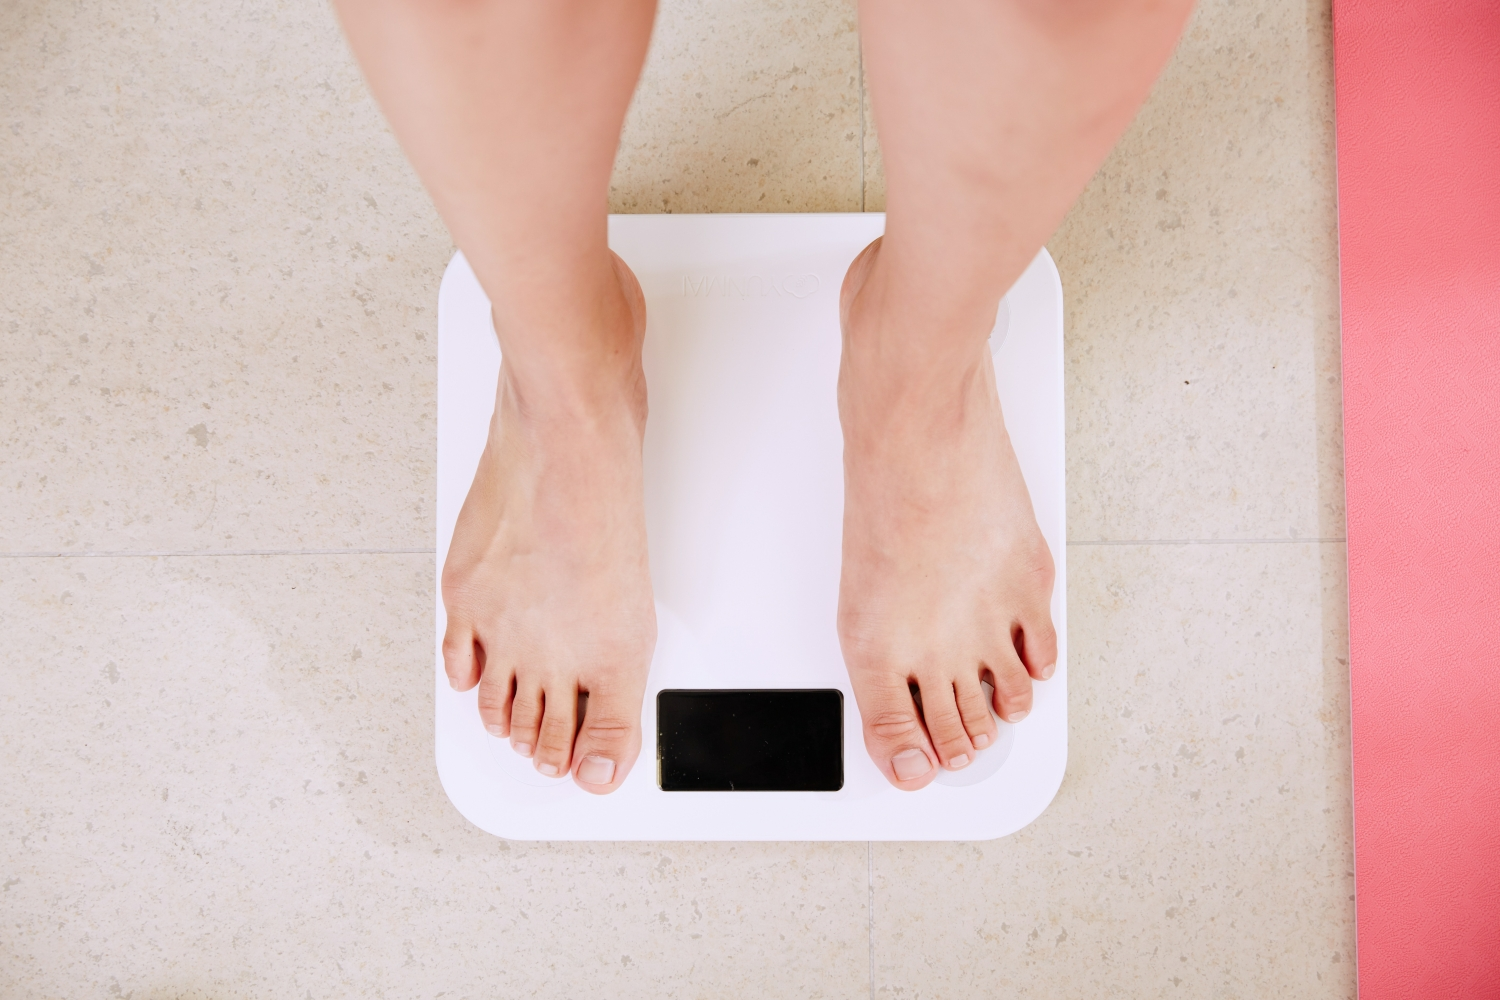 Evidence that increased BMI causes lower mental wellbeing